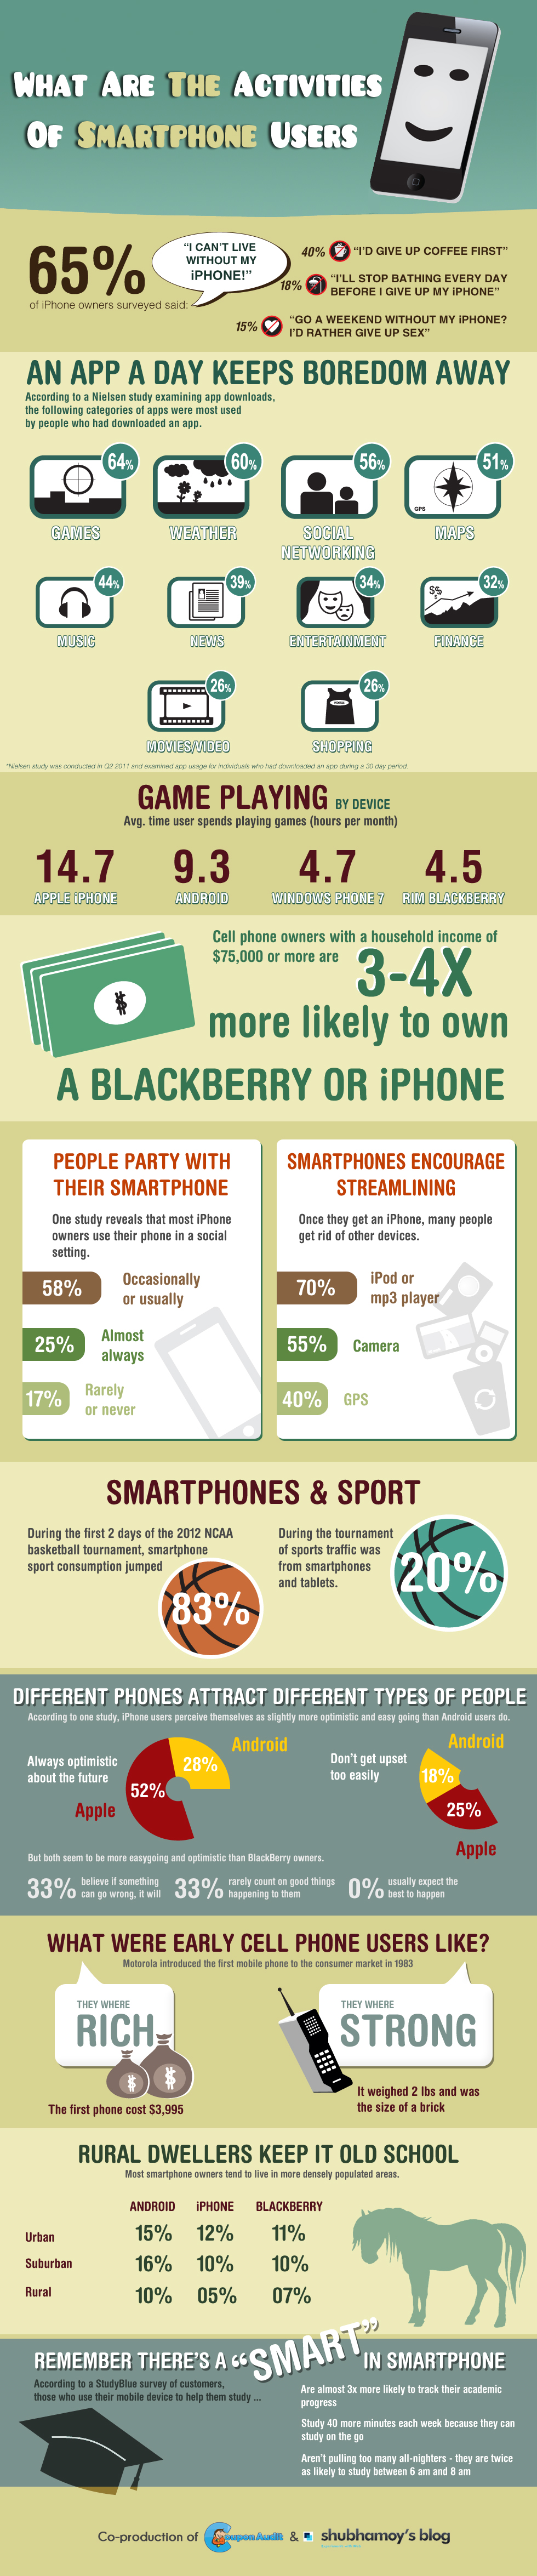 What are the activities of Smartphone Users